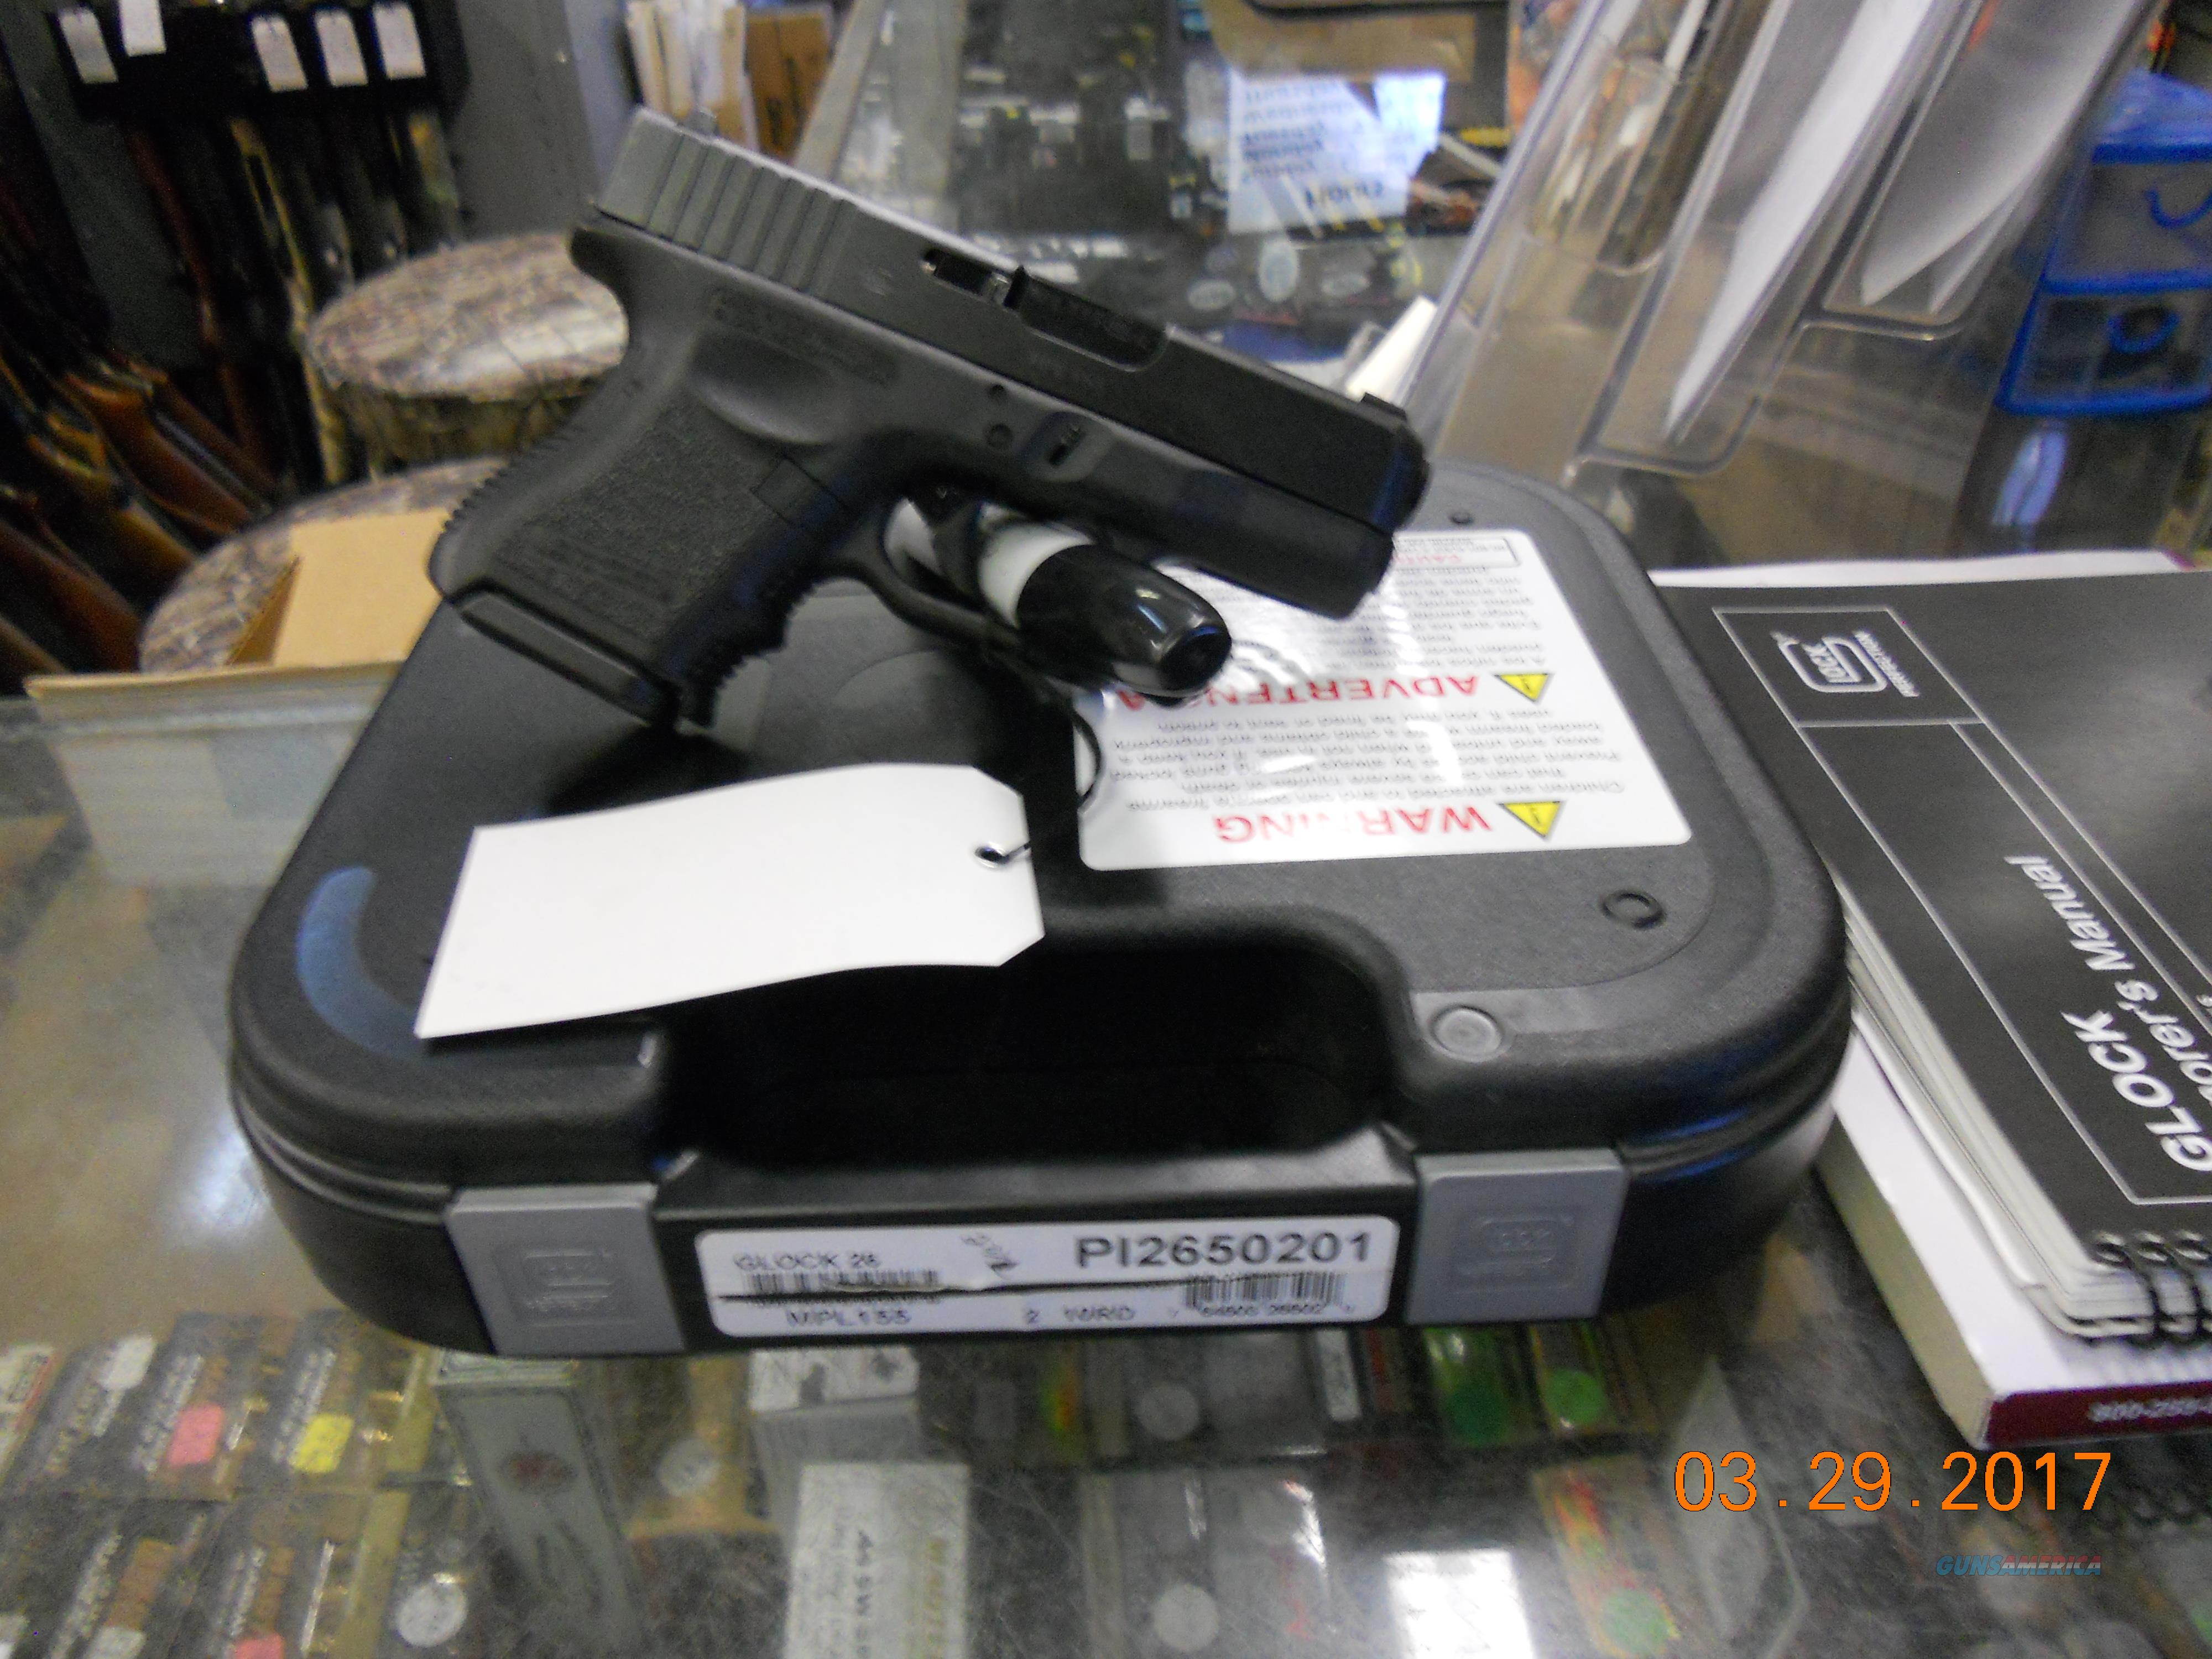 GLOCK PI2650201 26 9MM PISTOLW/XS BIG DOT NIGHT SITE  Guns > Pistols > Glock Pistols > 26/27